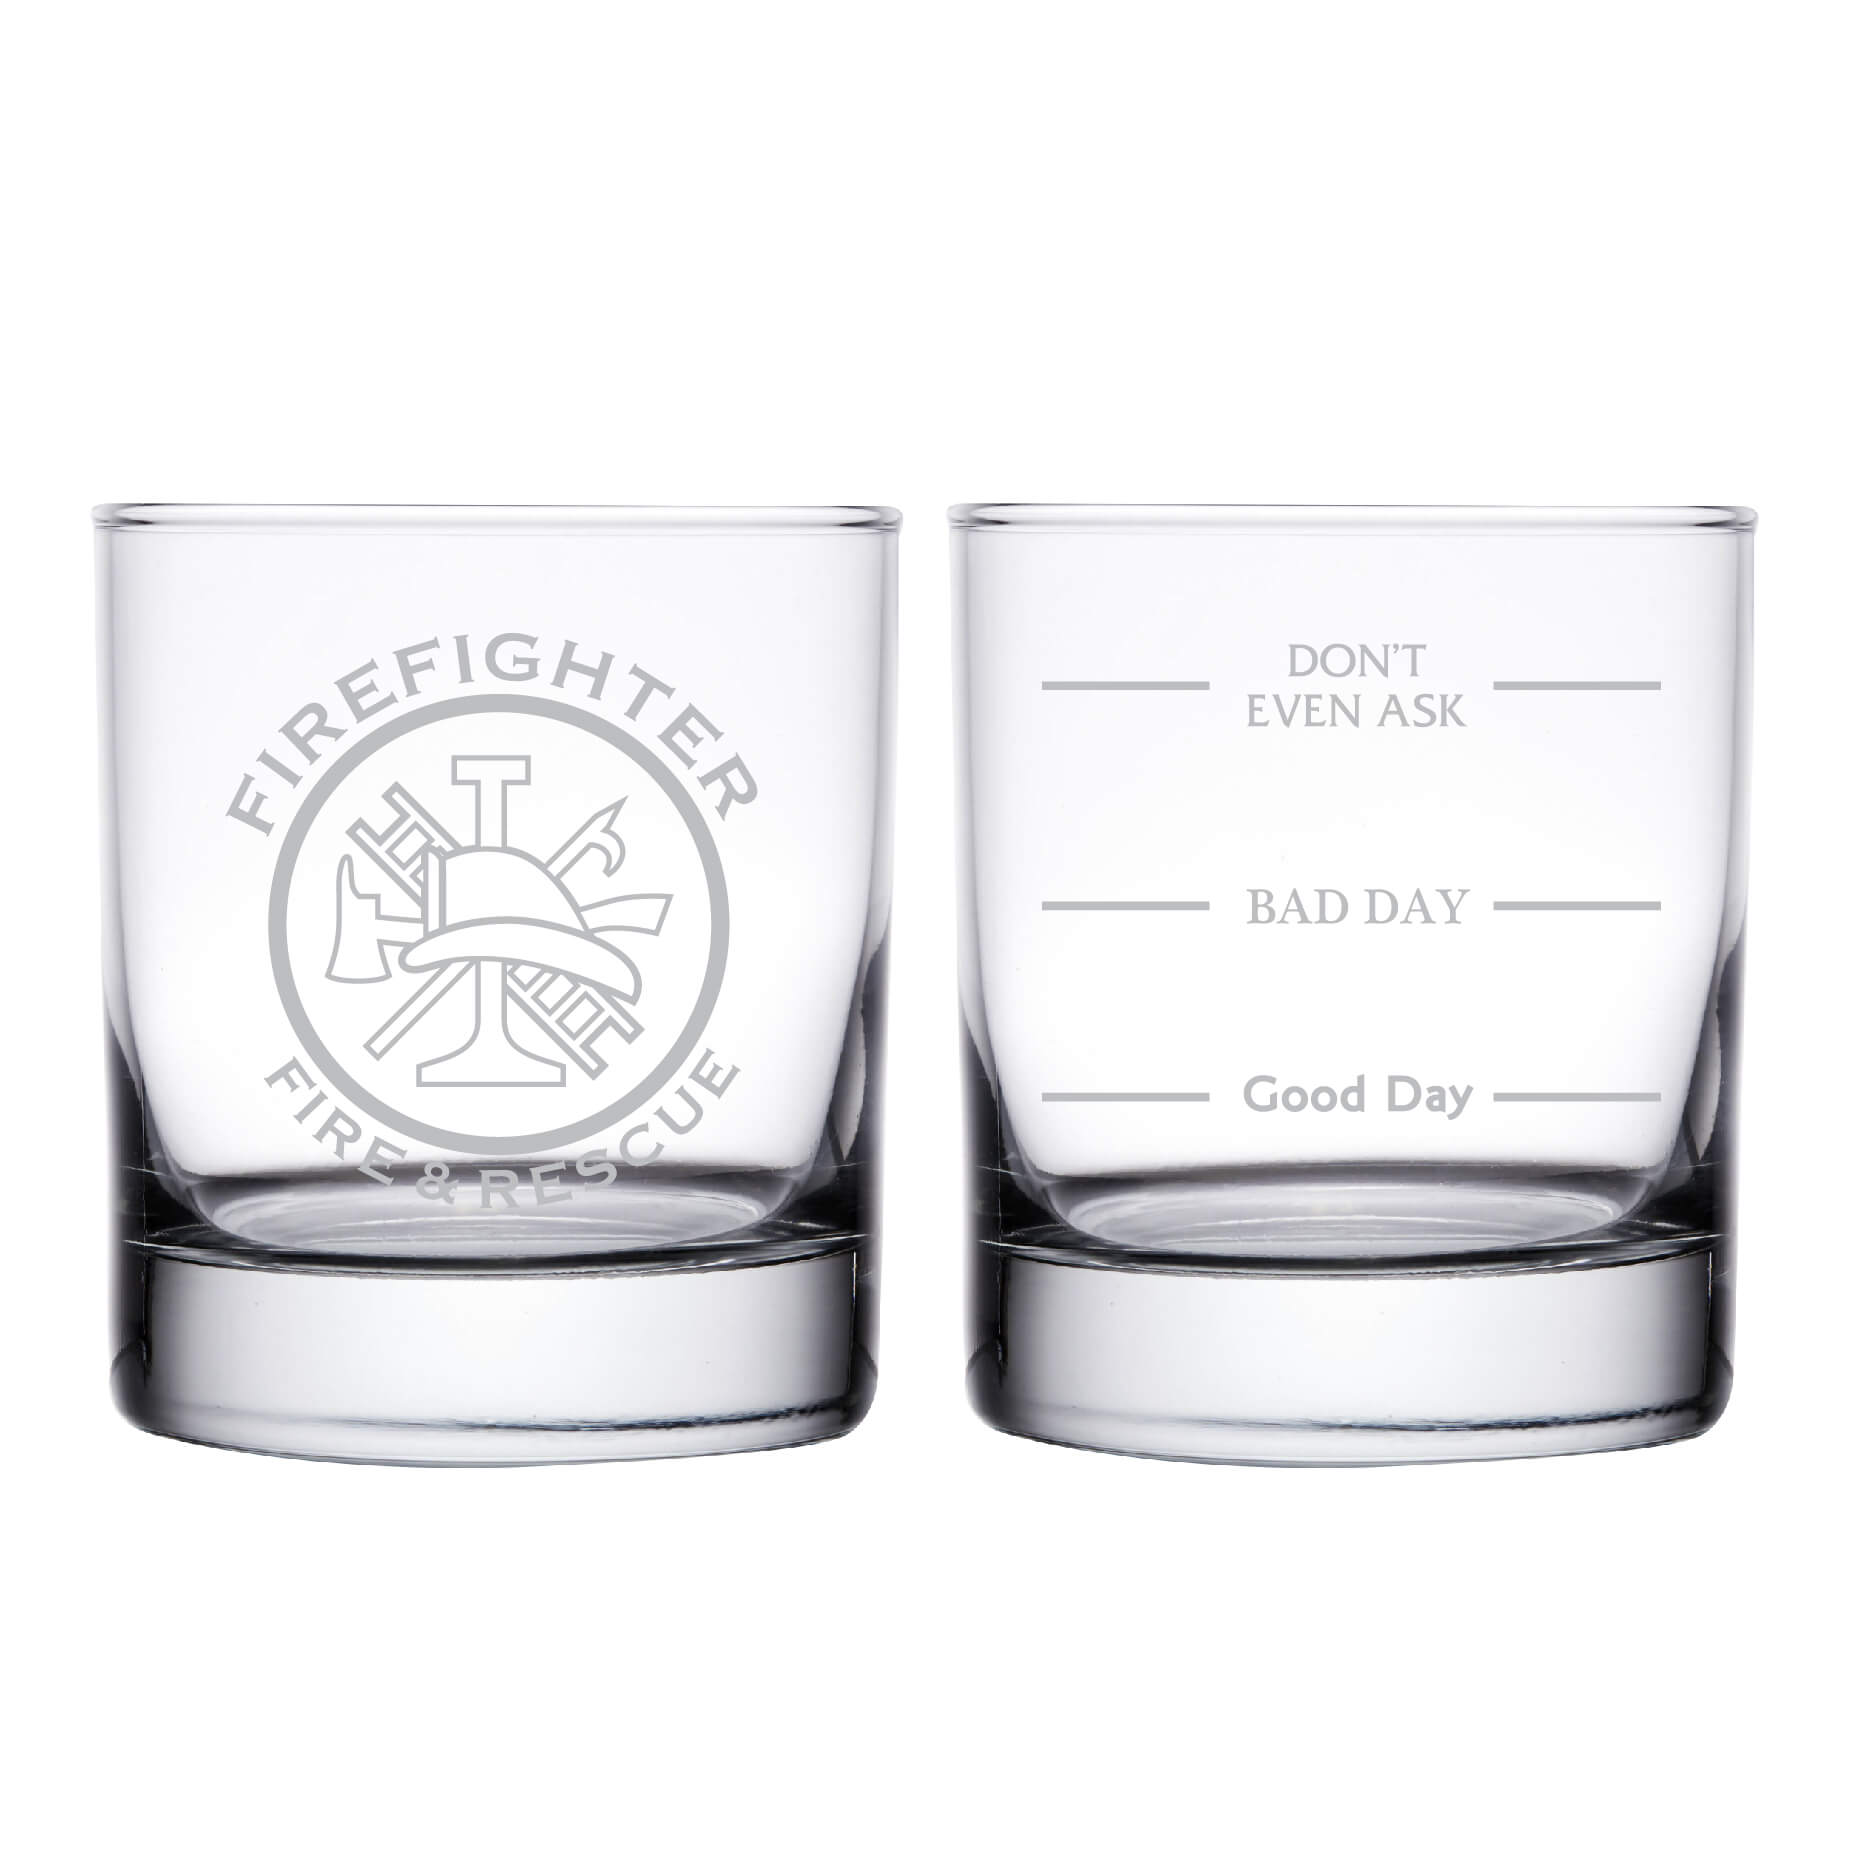 Firefighter Fire & Rescue Personalized Whiskey Glass